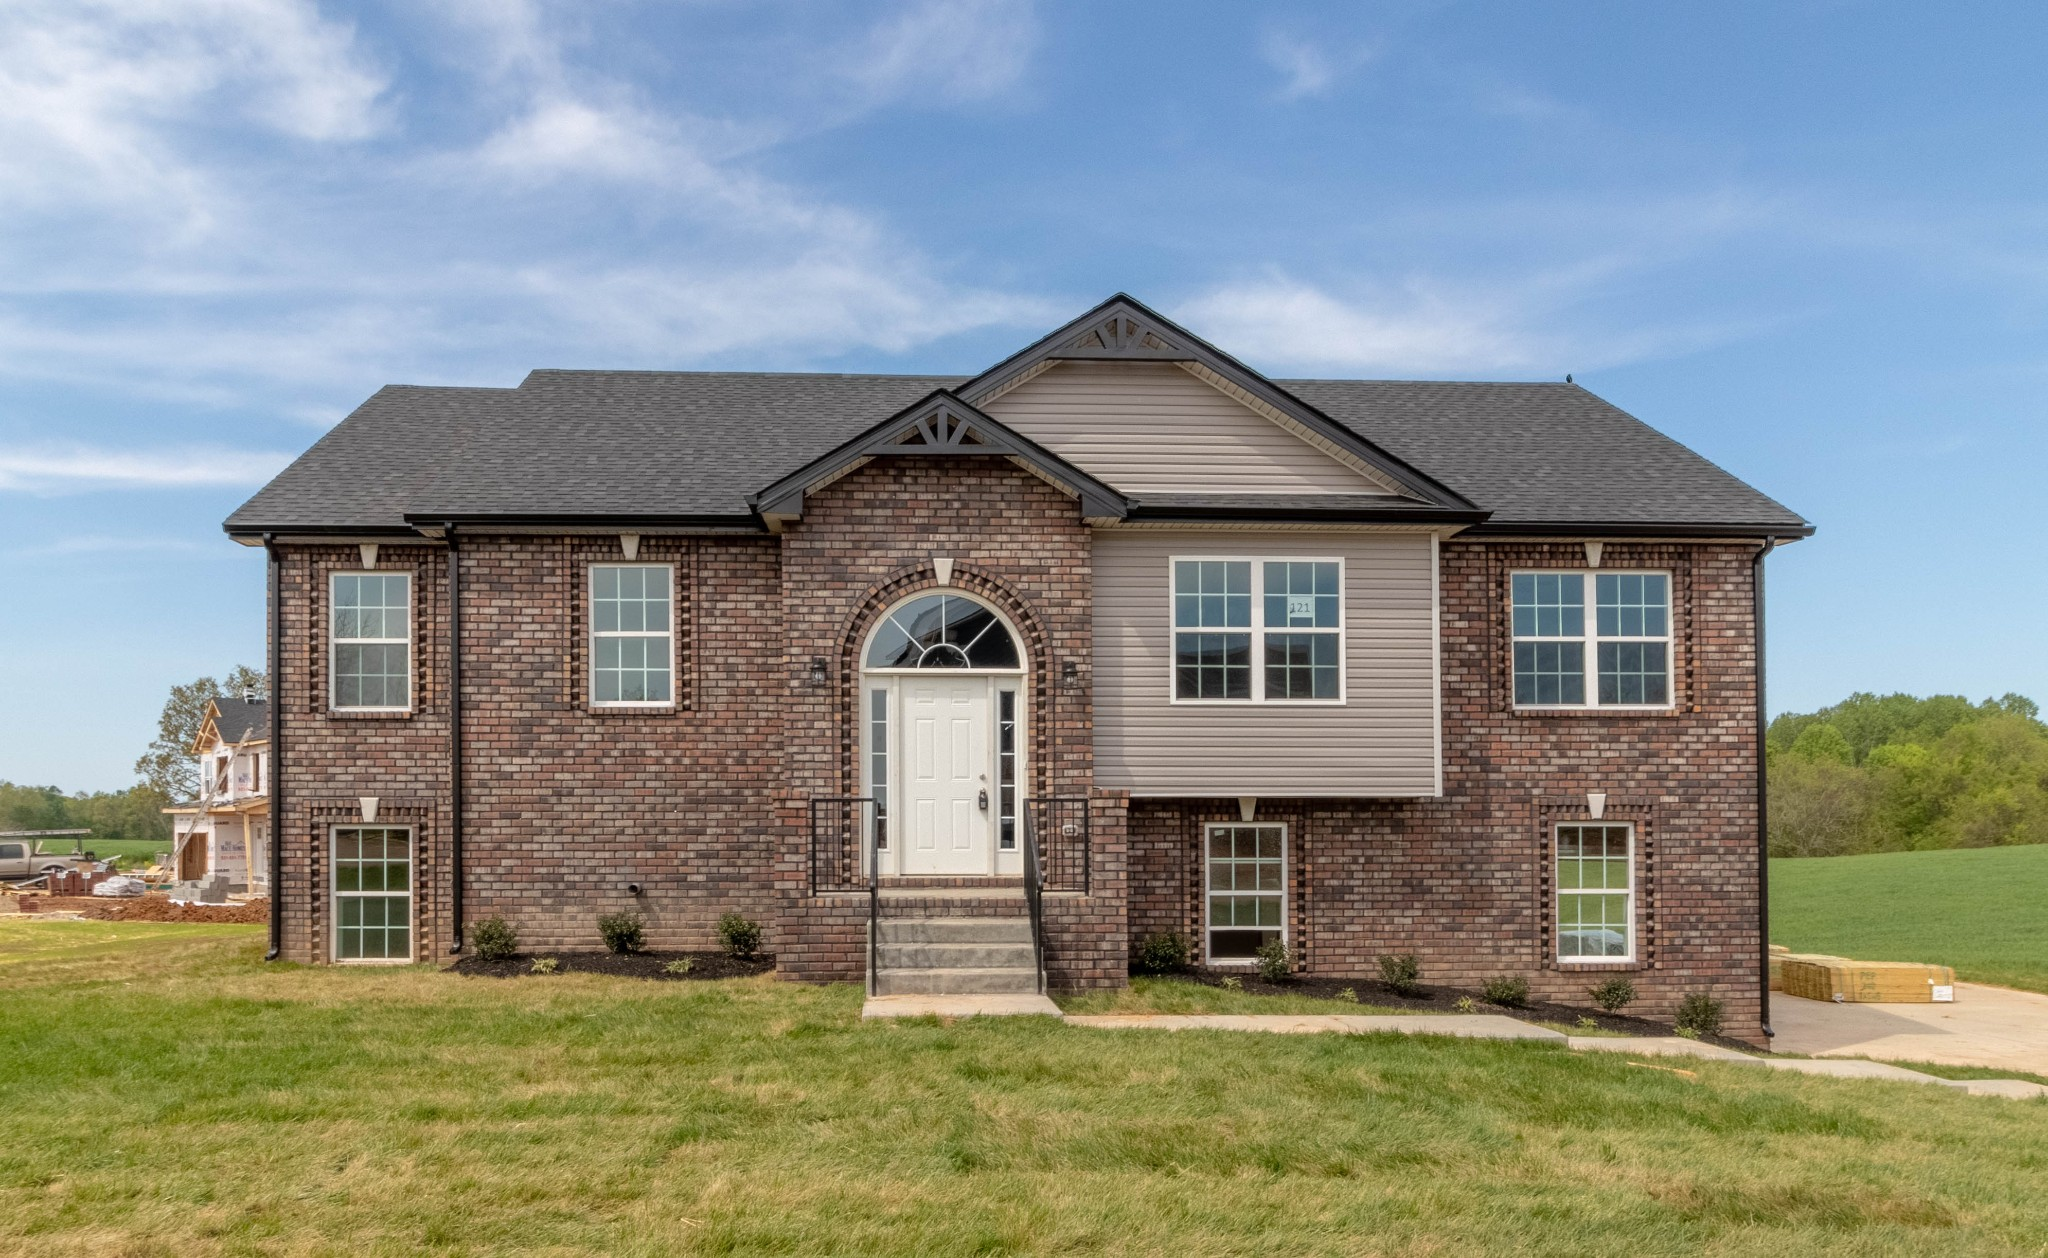 121 Anderson Place, Clarksville, TN 37042 - Clarksville, TN real estate listing